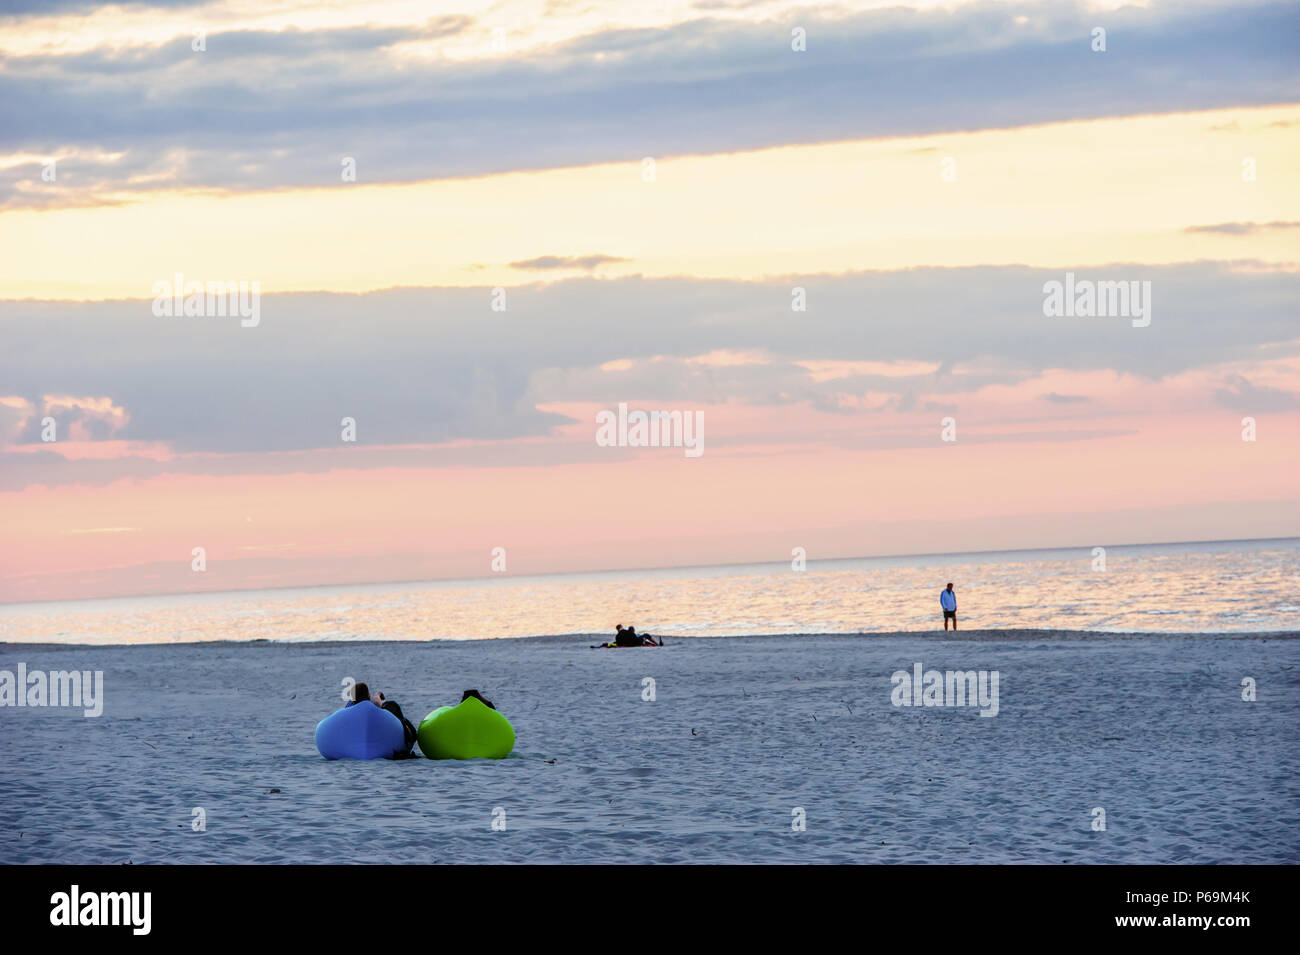 two people relaxing on mattresses during the sunset by the sea - Stock Image